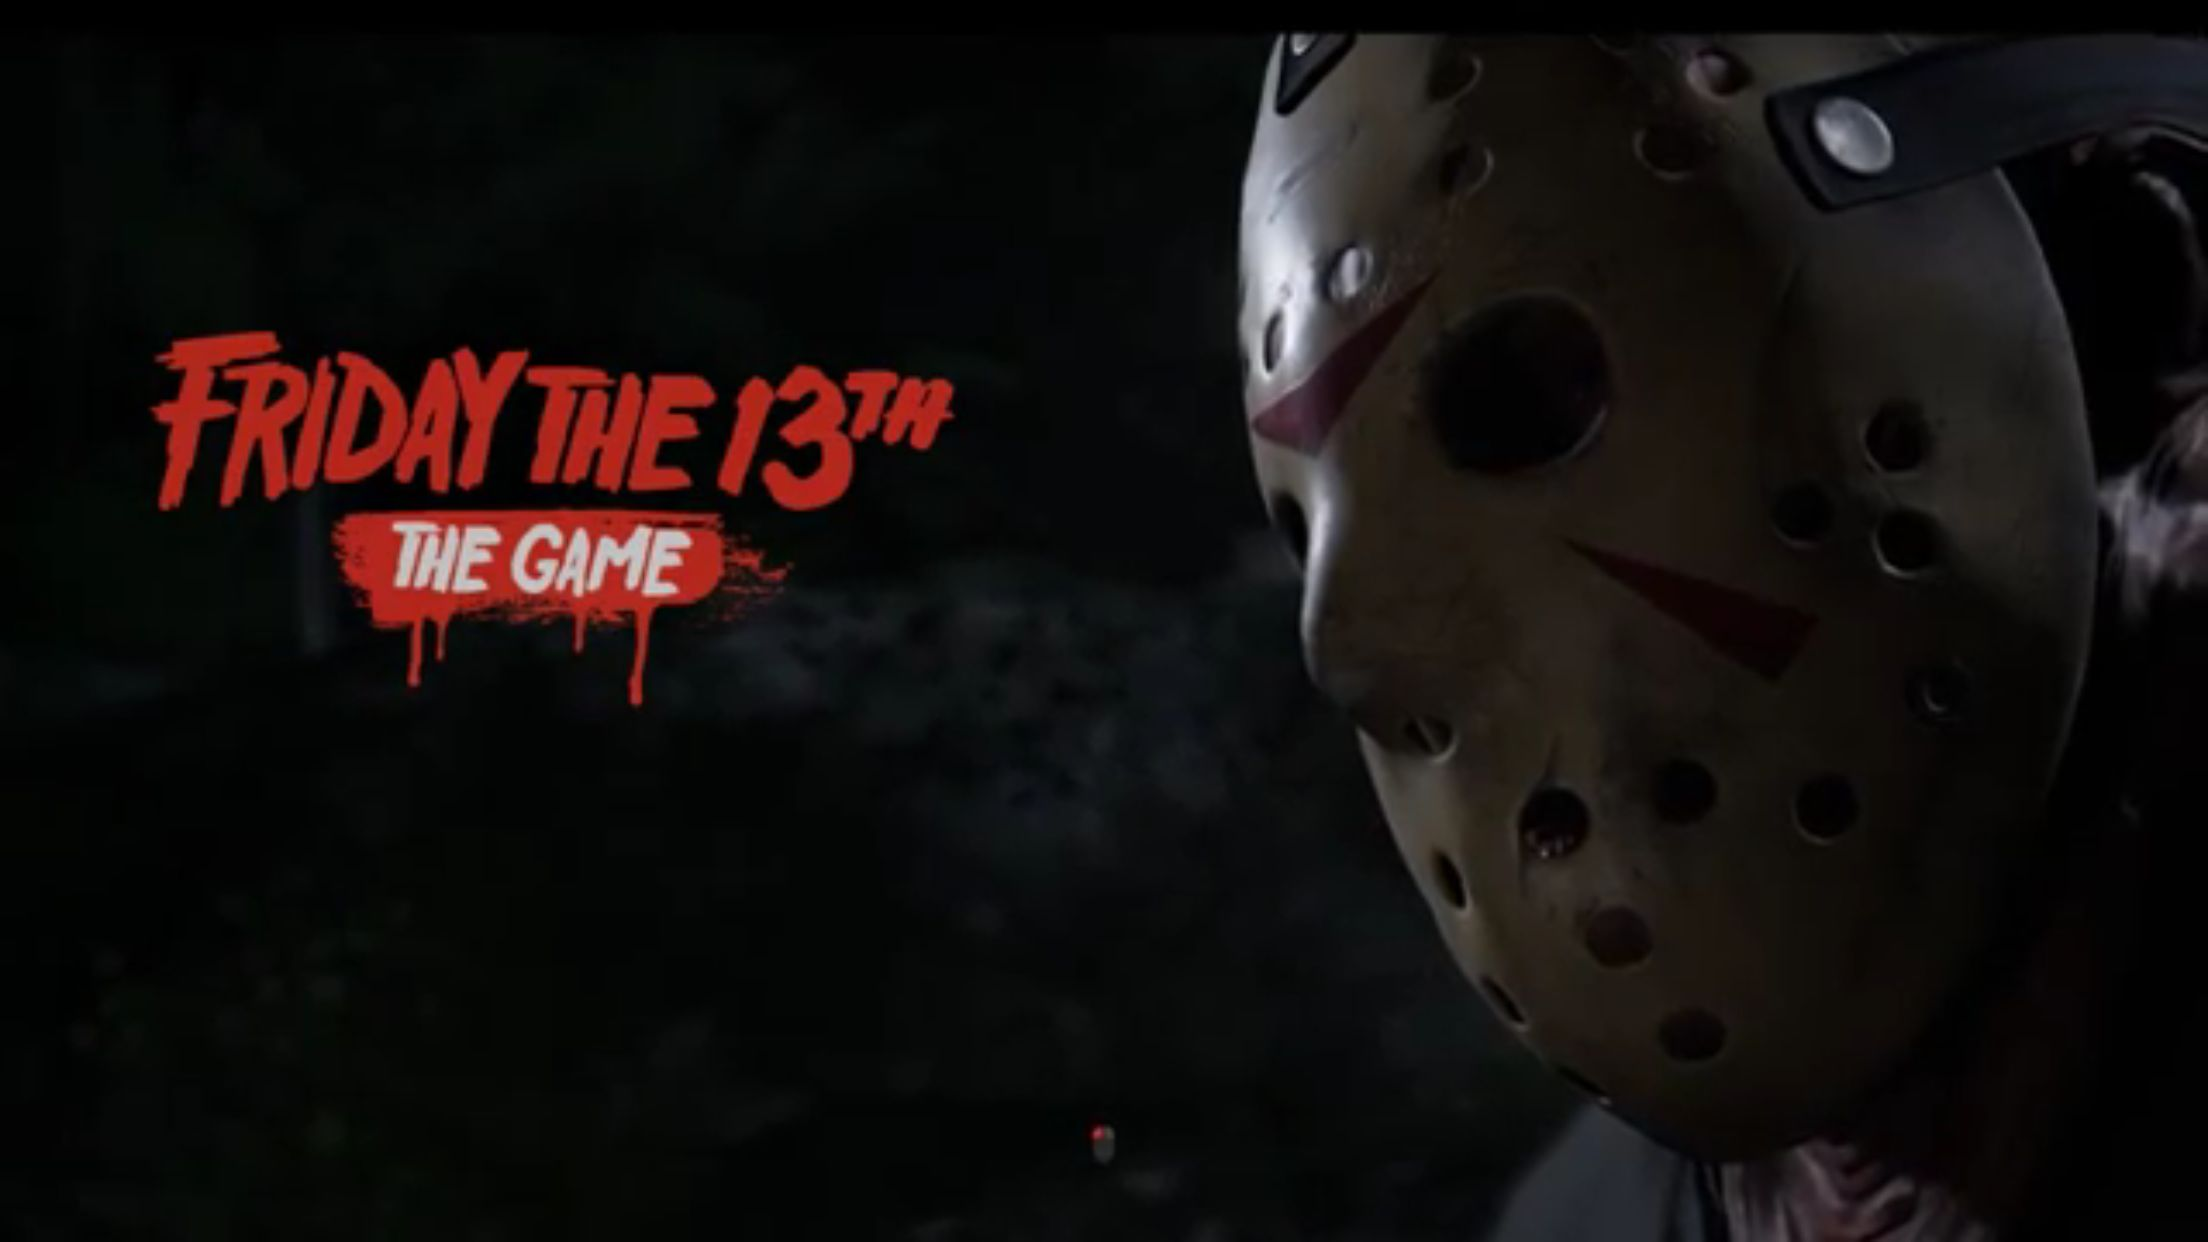 Friday The 13th The Game Wallpaper: 'Friday The 13th' Interview: Gory Game Co-Creator Ronnie